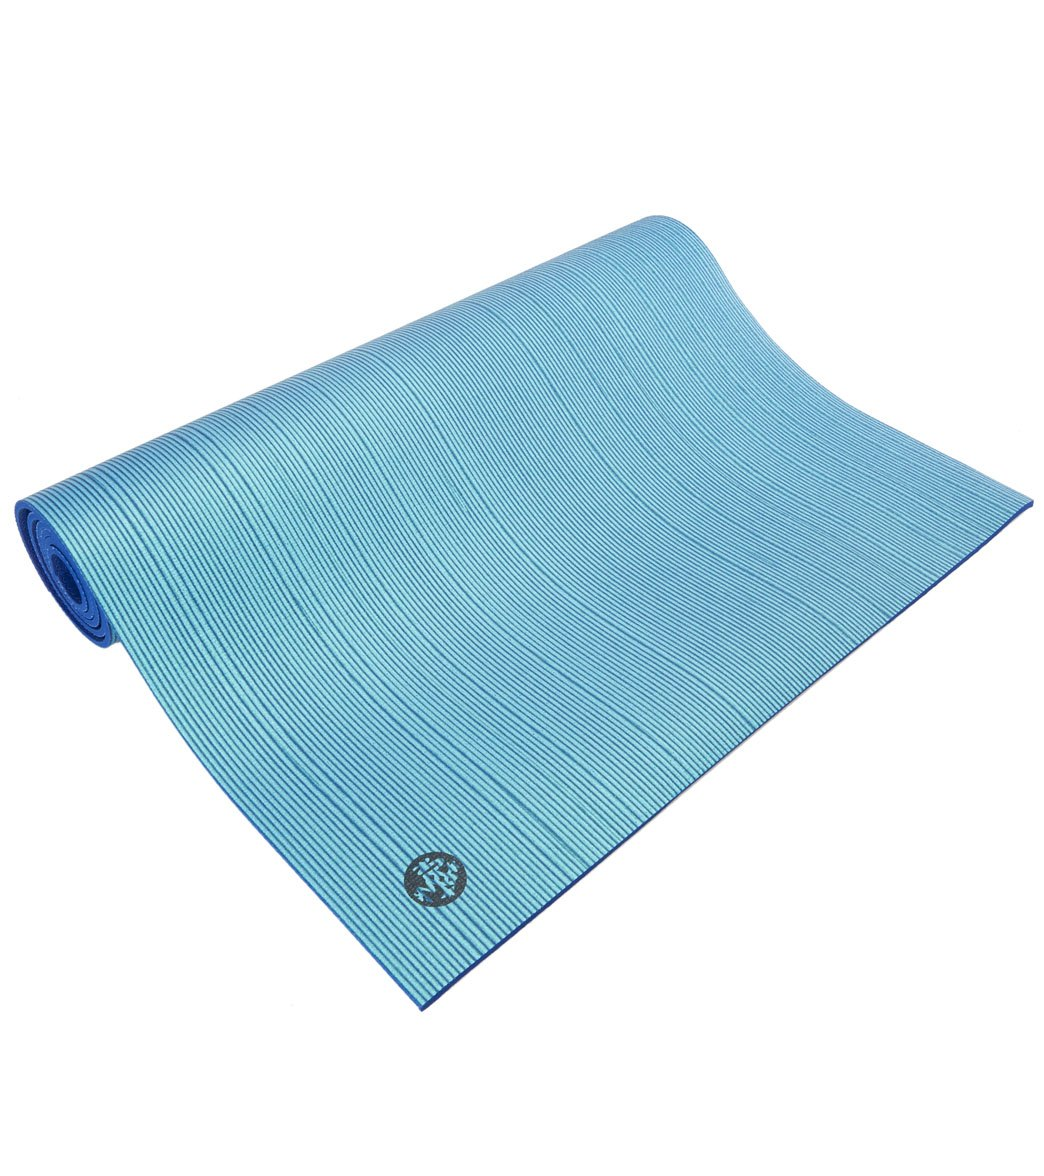 Manduka Pro Yoga Mat 71 6mm Extra Thick At Yogaoutlet Com Free